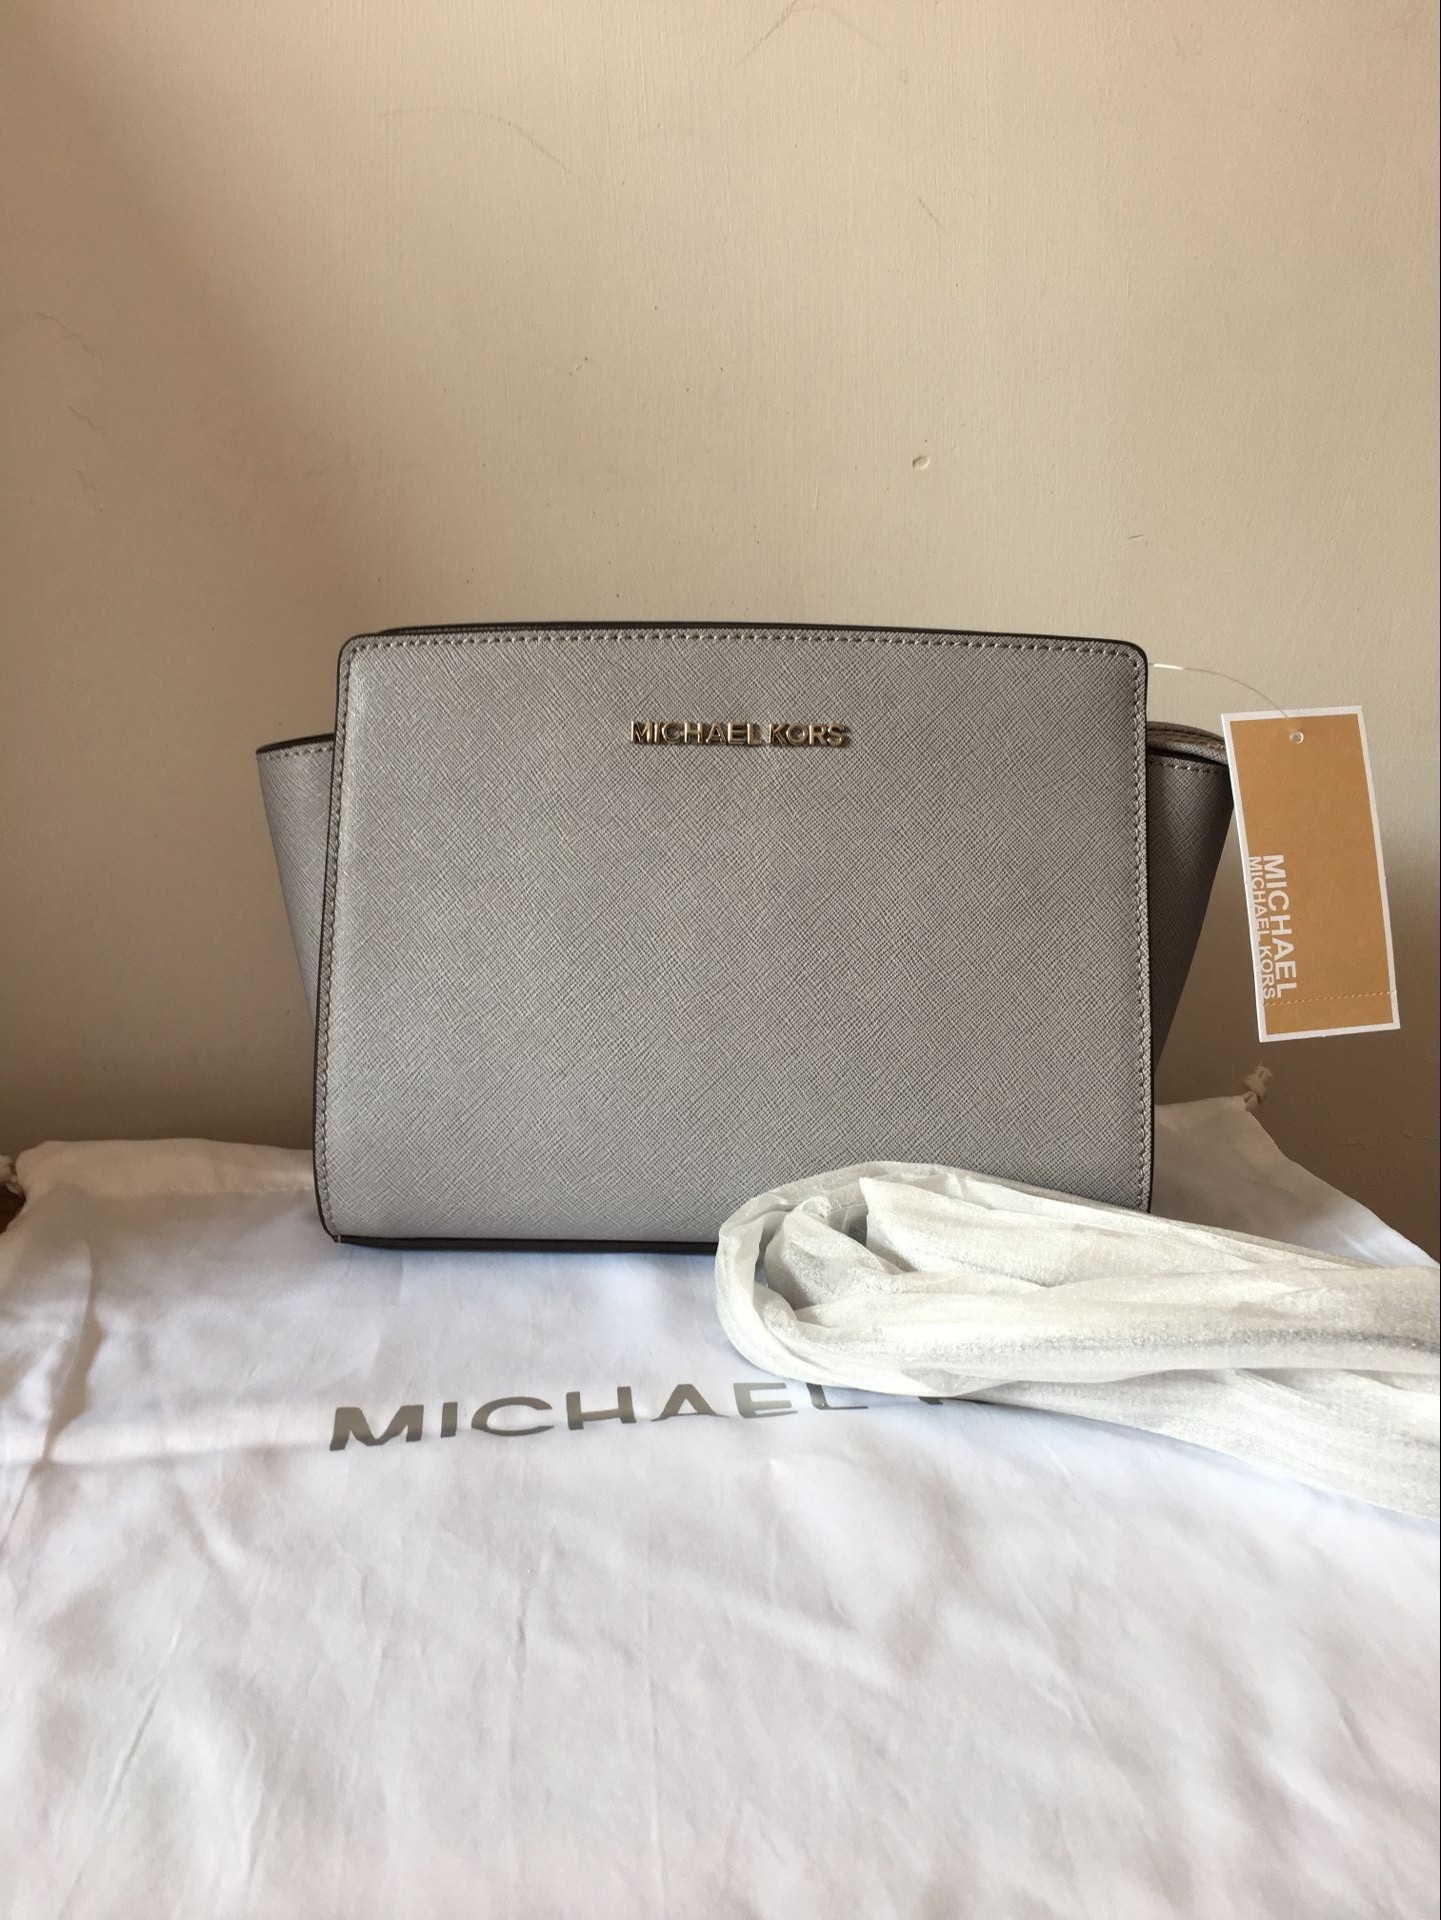 591d9aa787ee MICHAEL KORS Selma Medium Messenger Crossbody Bag Pearl Grey Authentic on  Storenvy